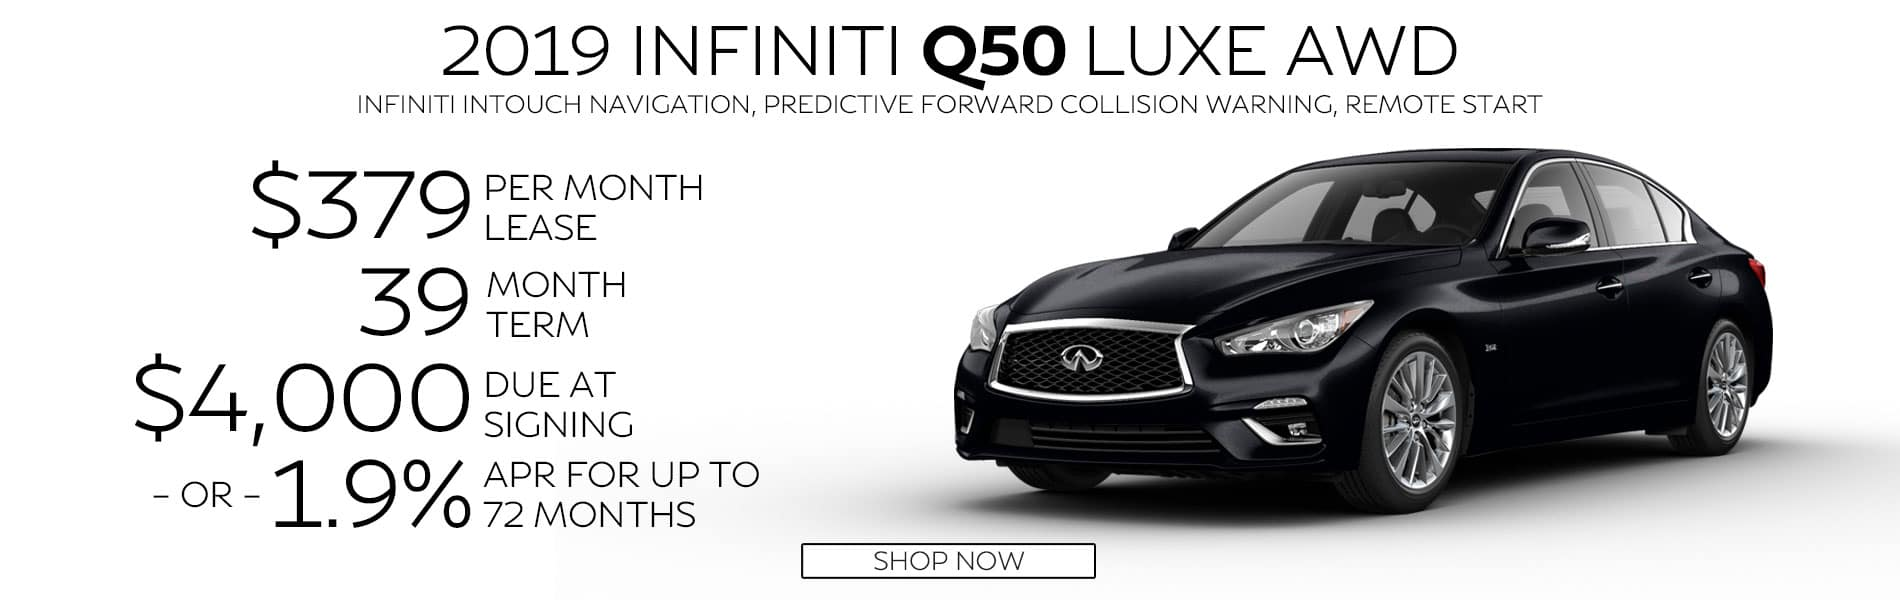 Lease a 2019 Q50 3.0t LUXE AWD for $379 per month with $4,000 due at signing